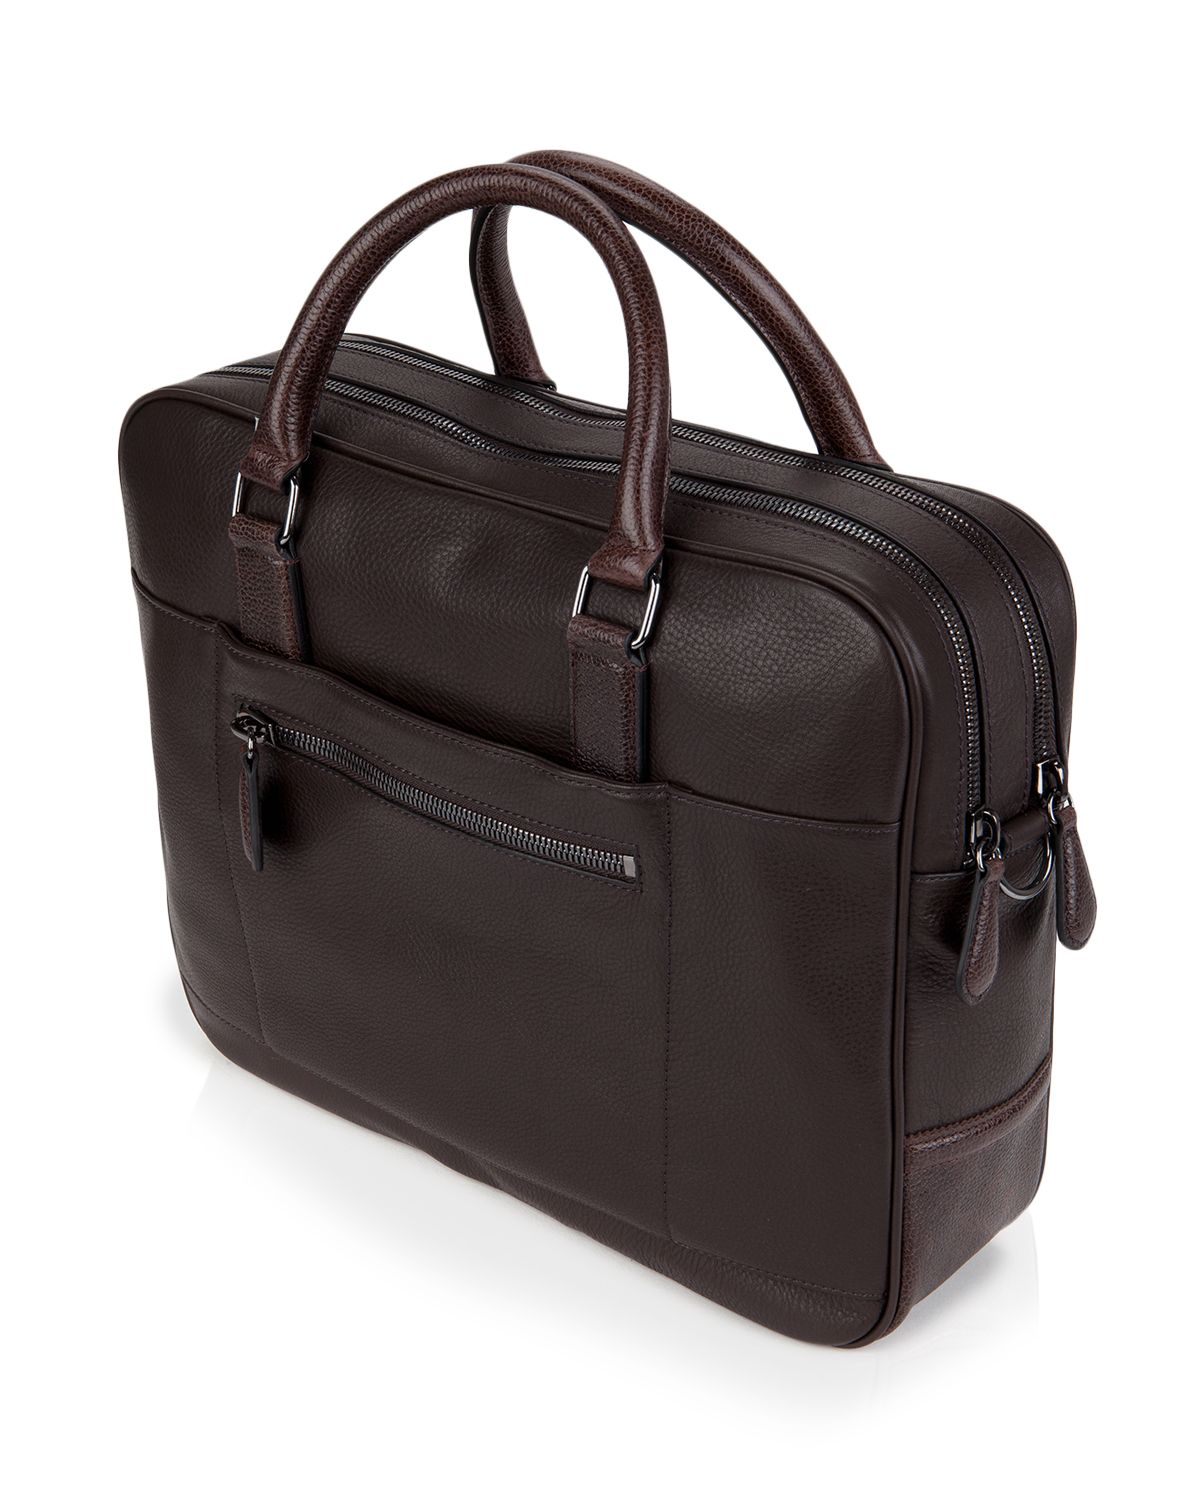 Ted baker picton leather document bag in brown for men lyst for Ted baker london leather document bag